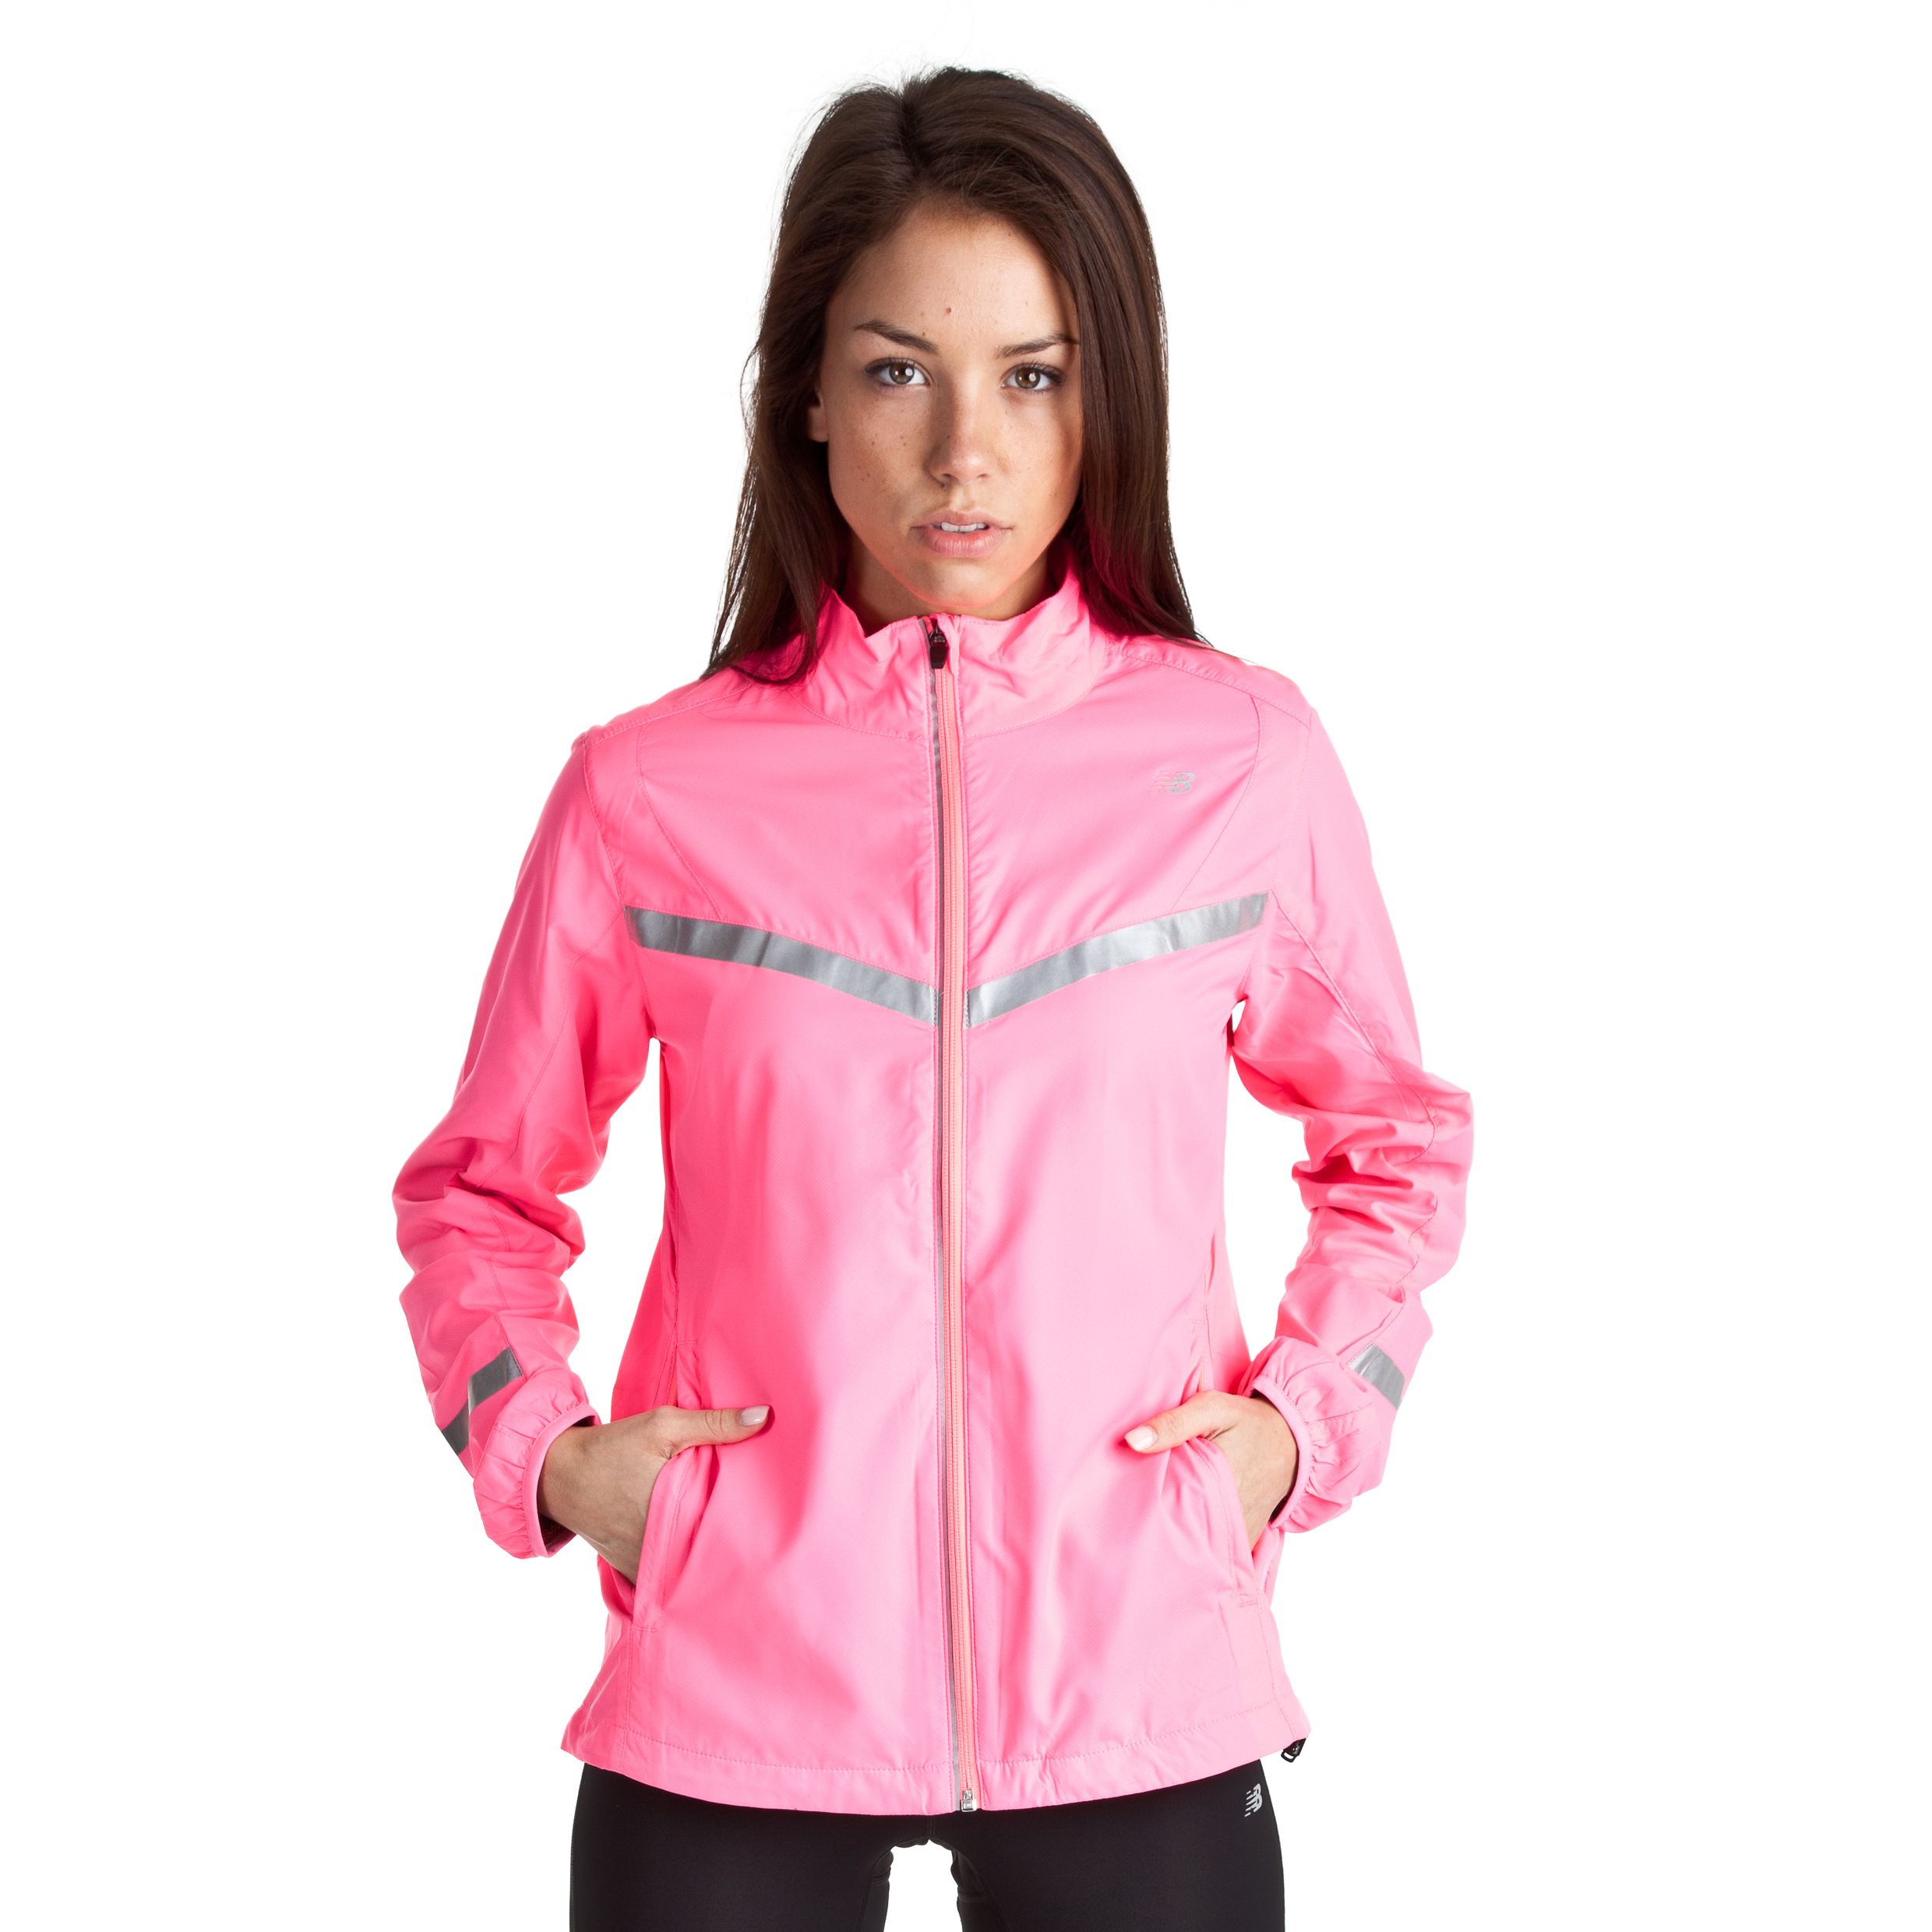 New Balance 360 Jacket - Pink - Womens